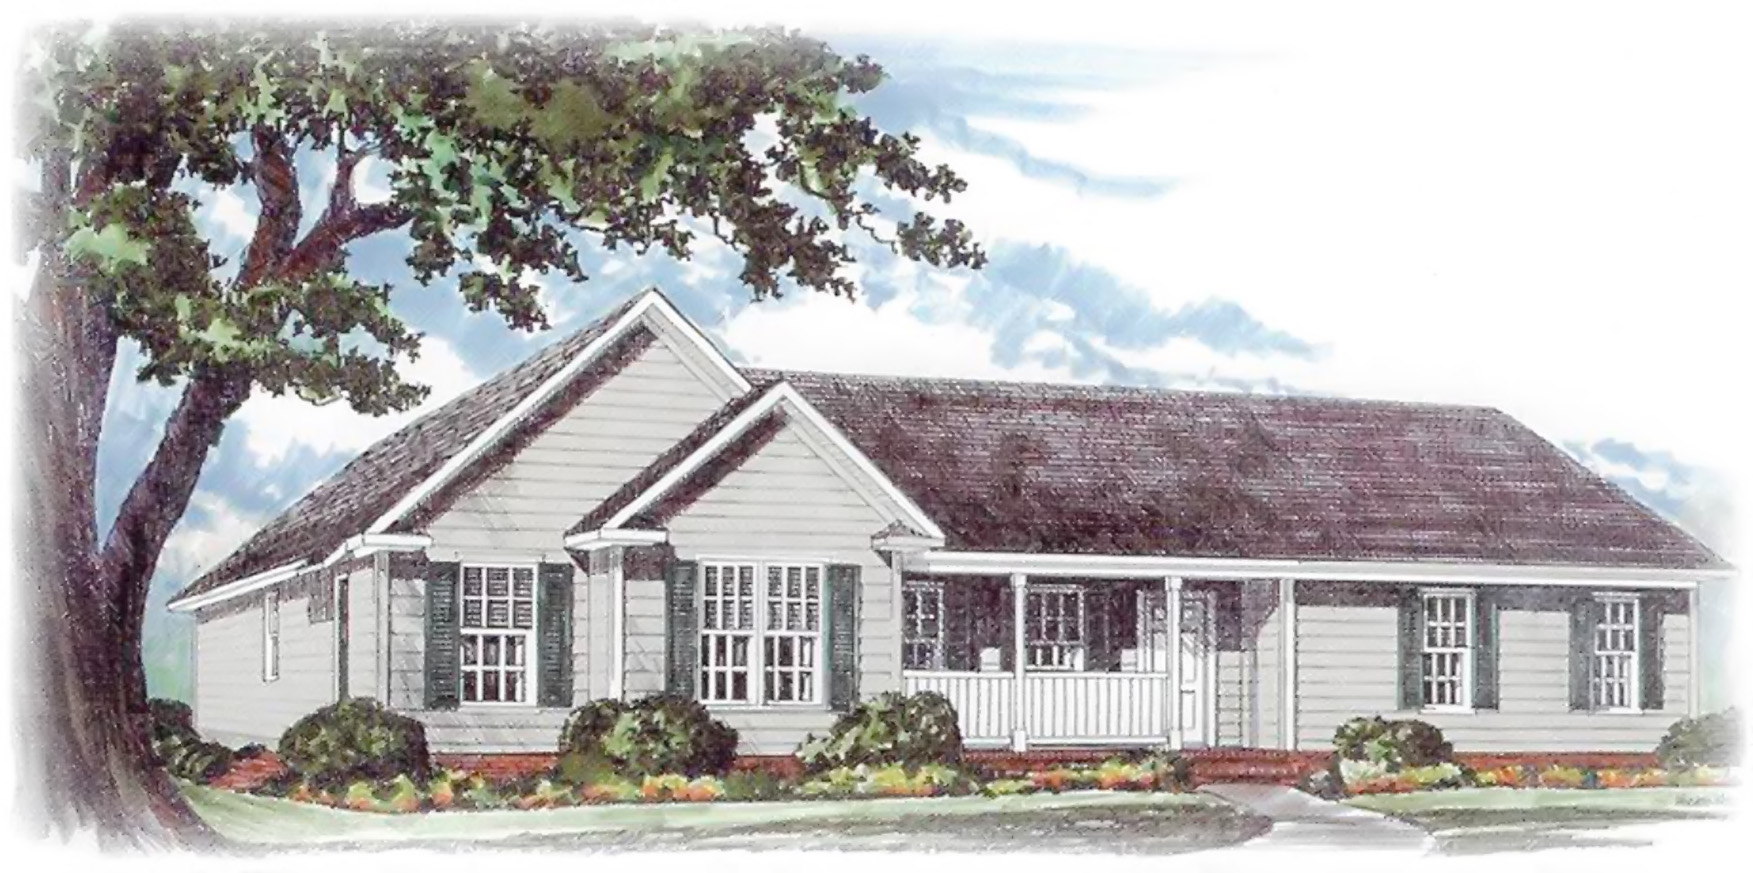 Westwind Pennyworth Homes Tallahassee Home Builder